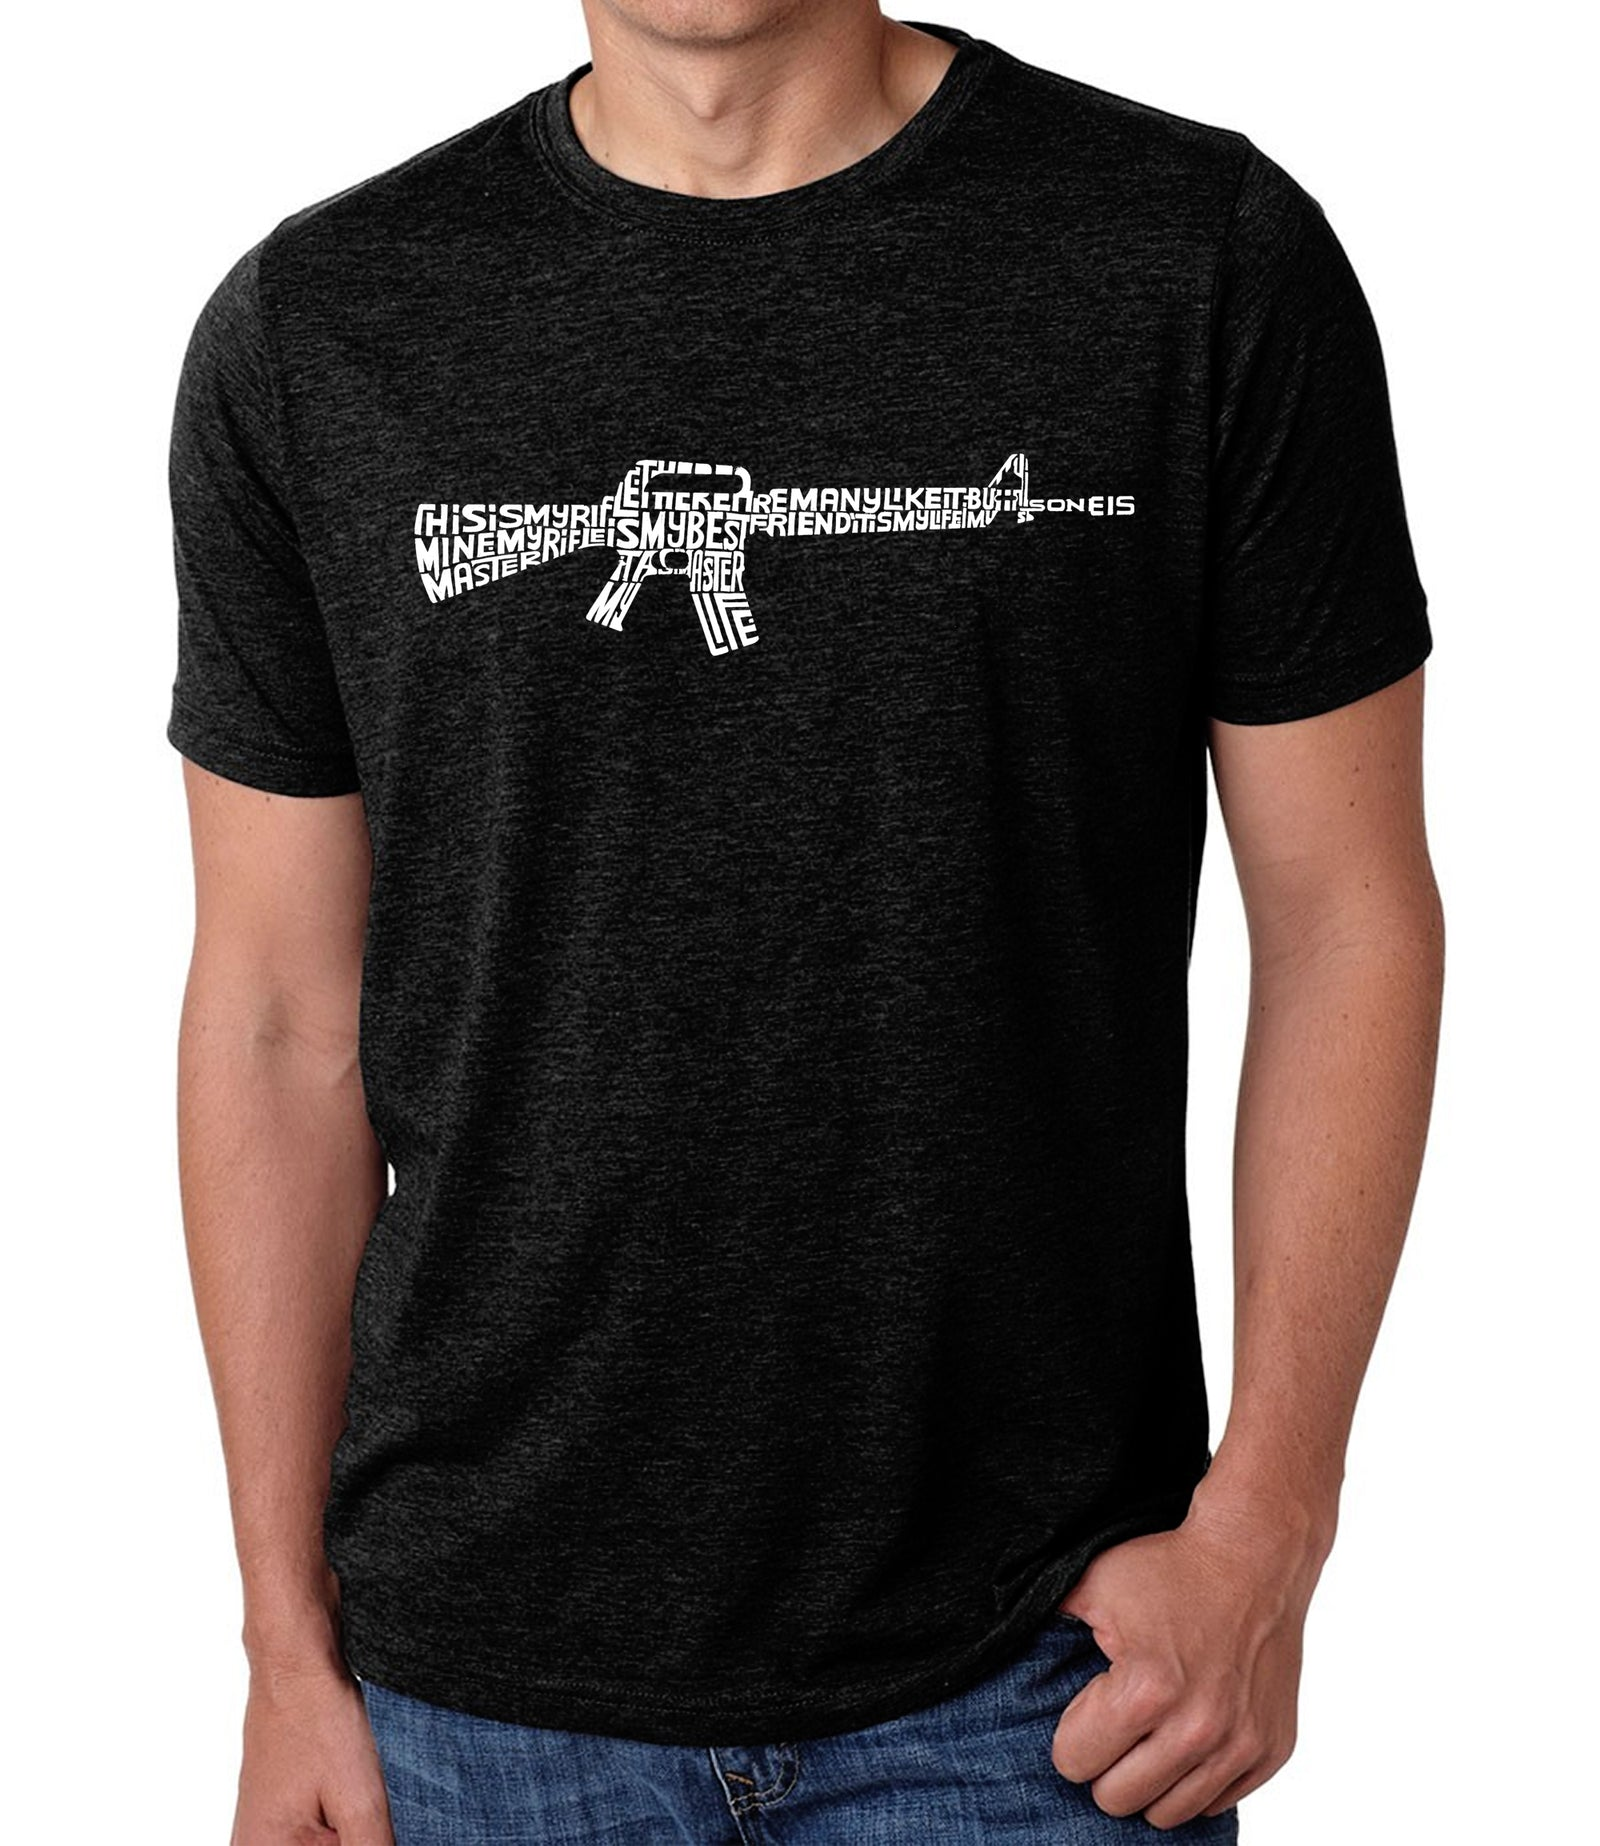 Men's Premium Blend Word Art T-shirt - RIFLEMANS CREED